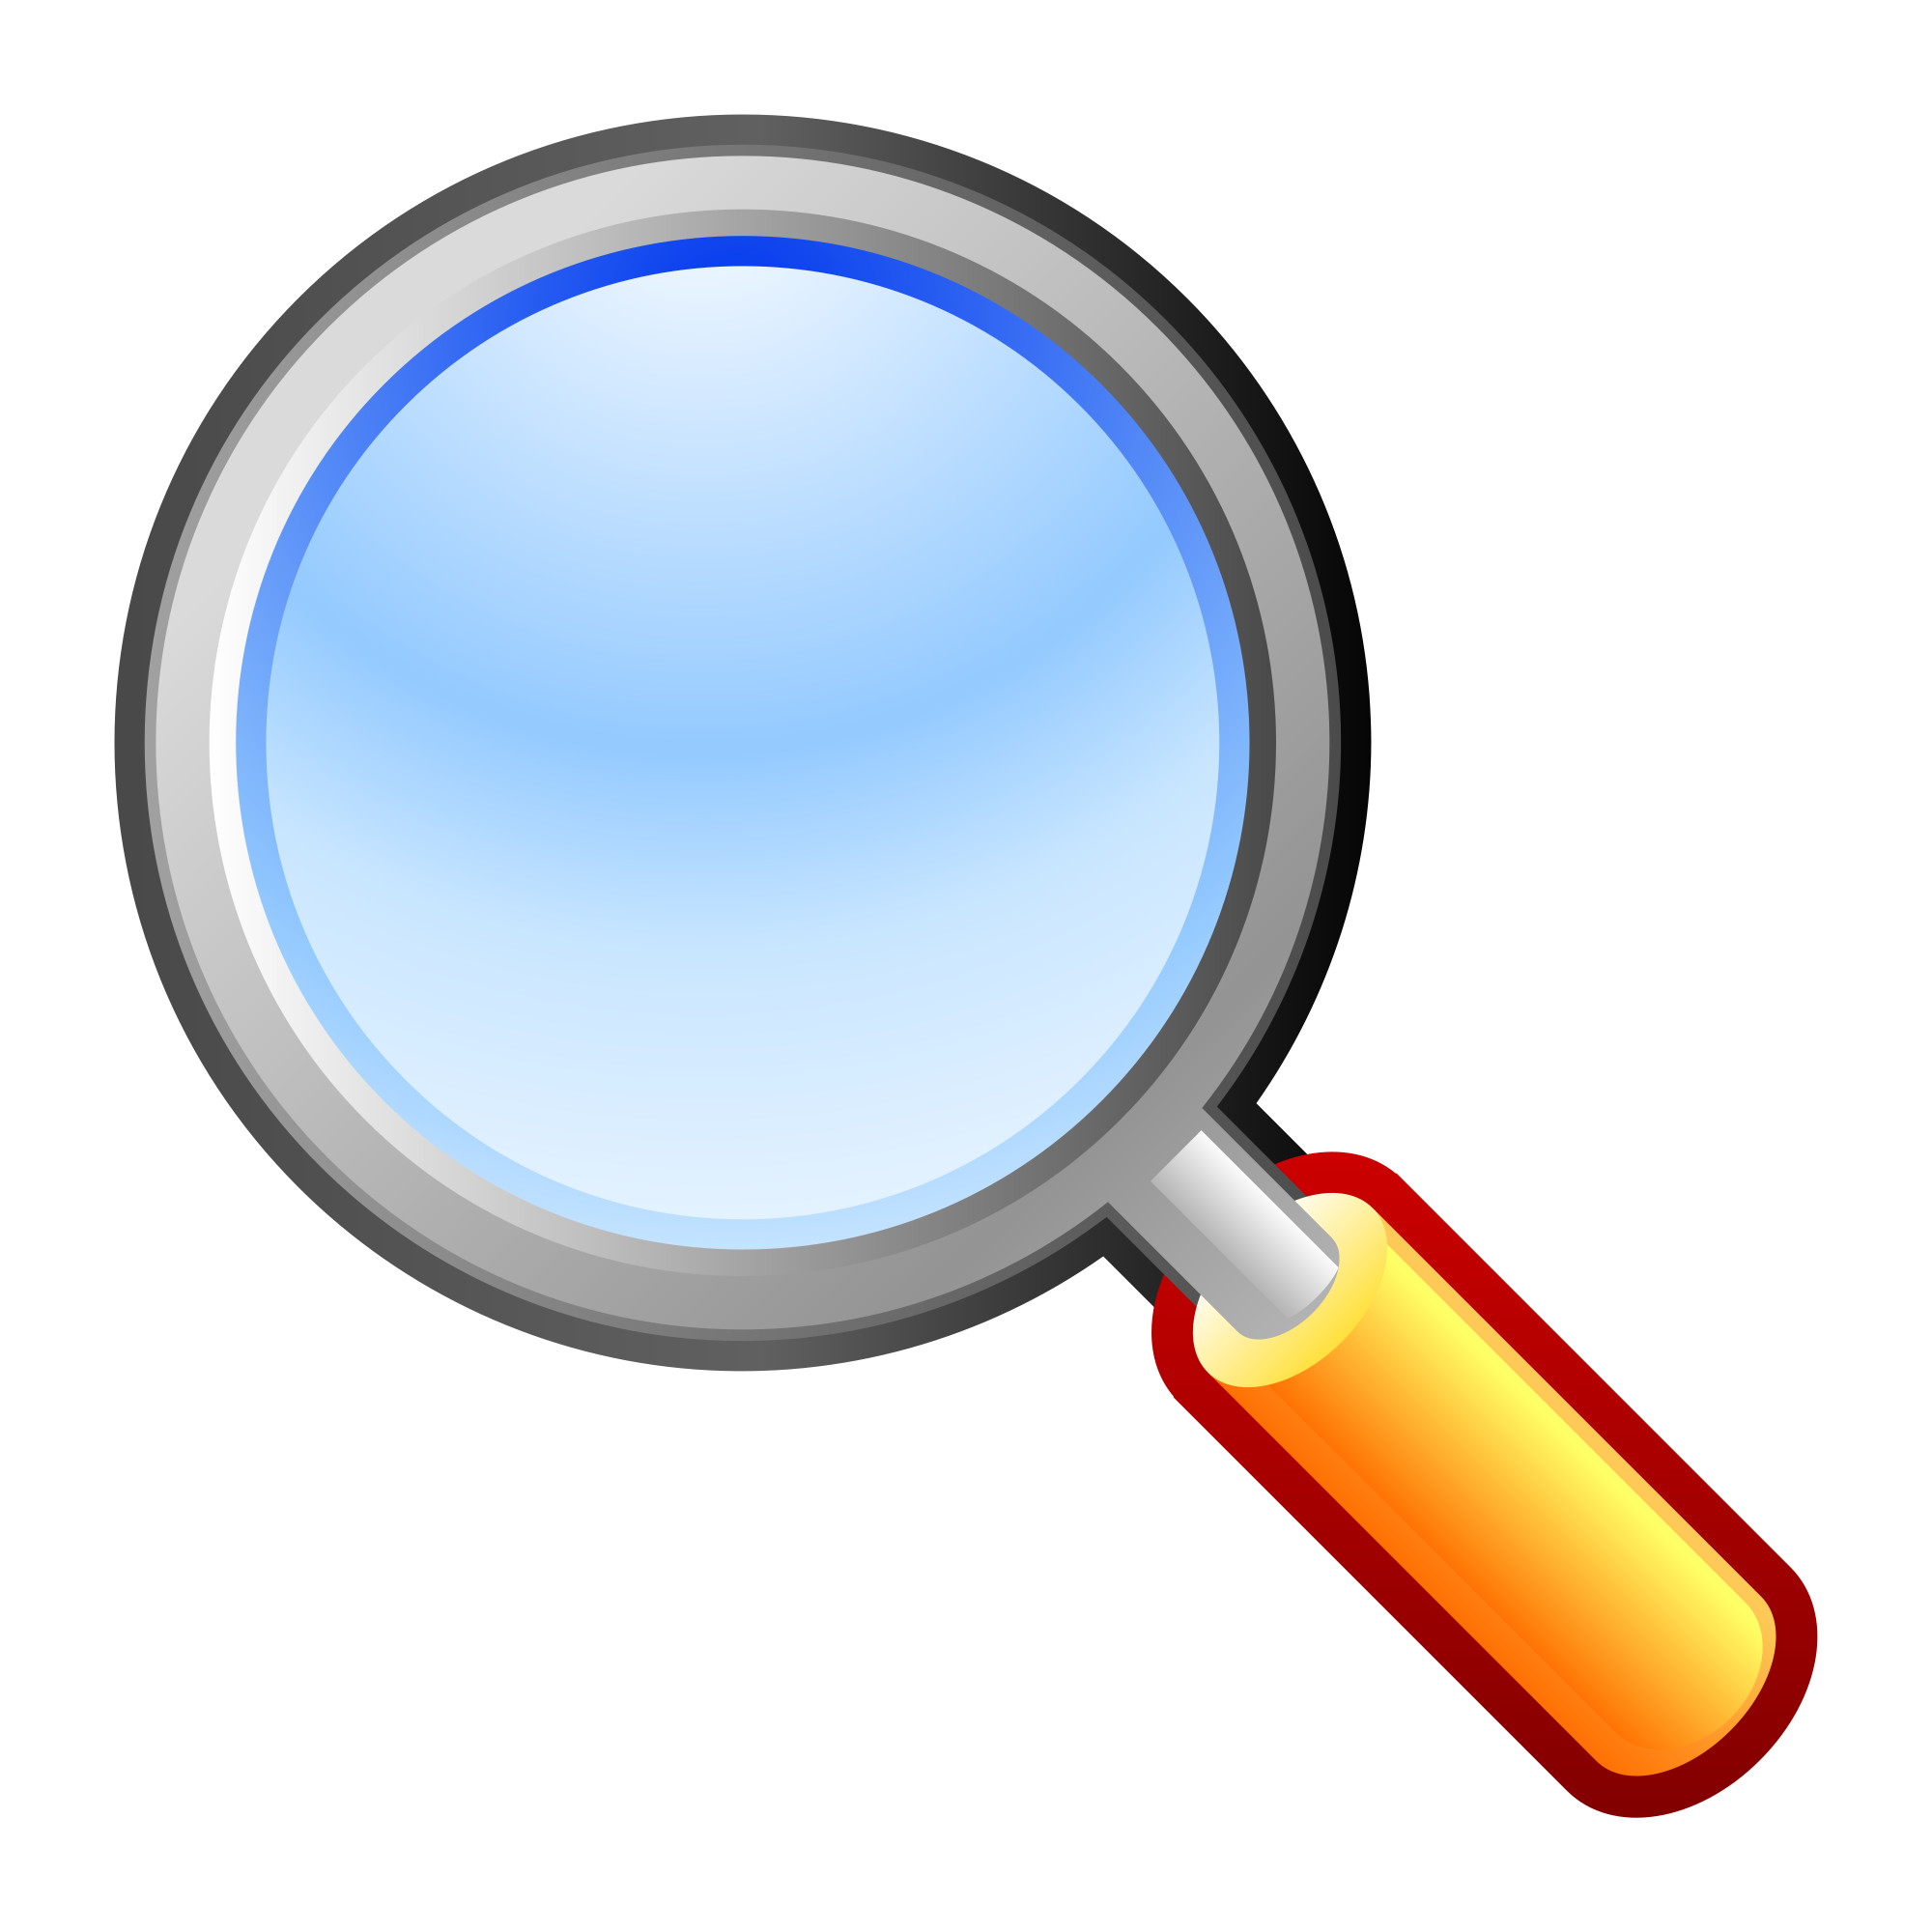 Clip art free microsoft. Person clipart magnifying glass